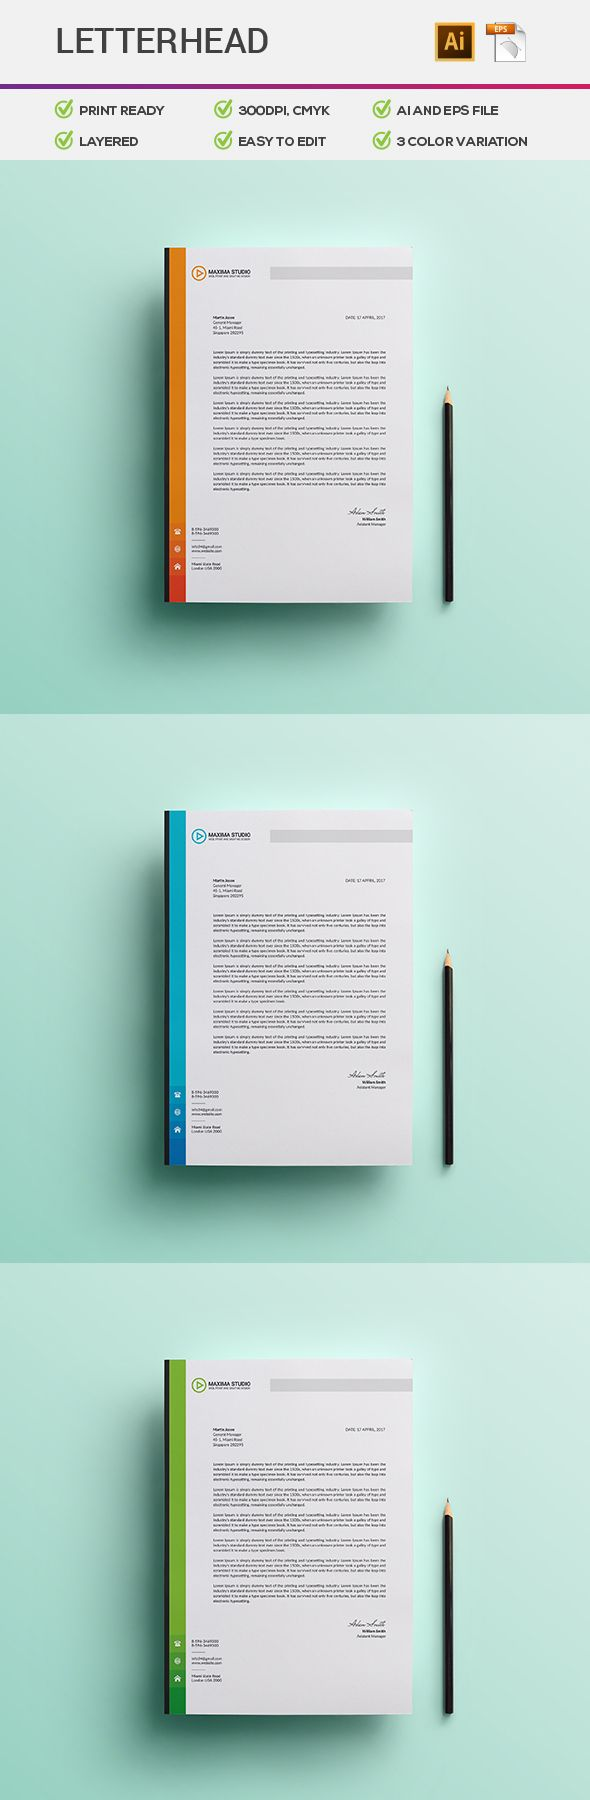 letterhead design on behance - Letterhead Design Ideas